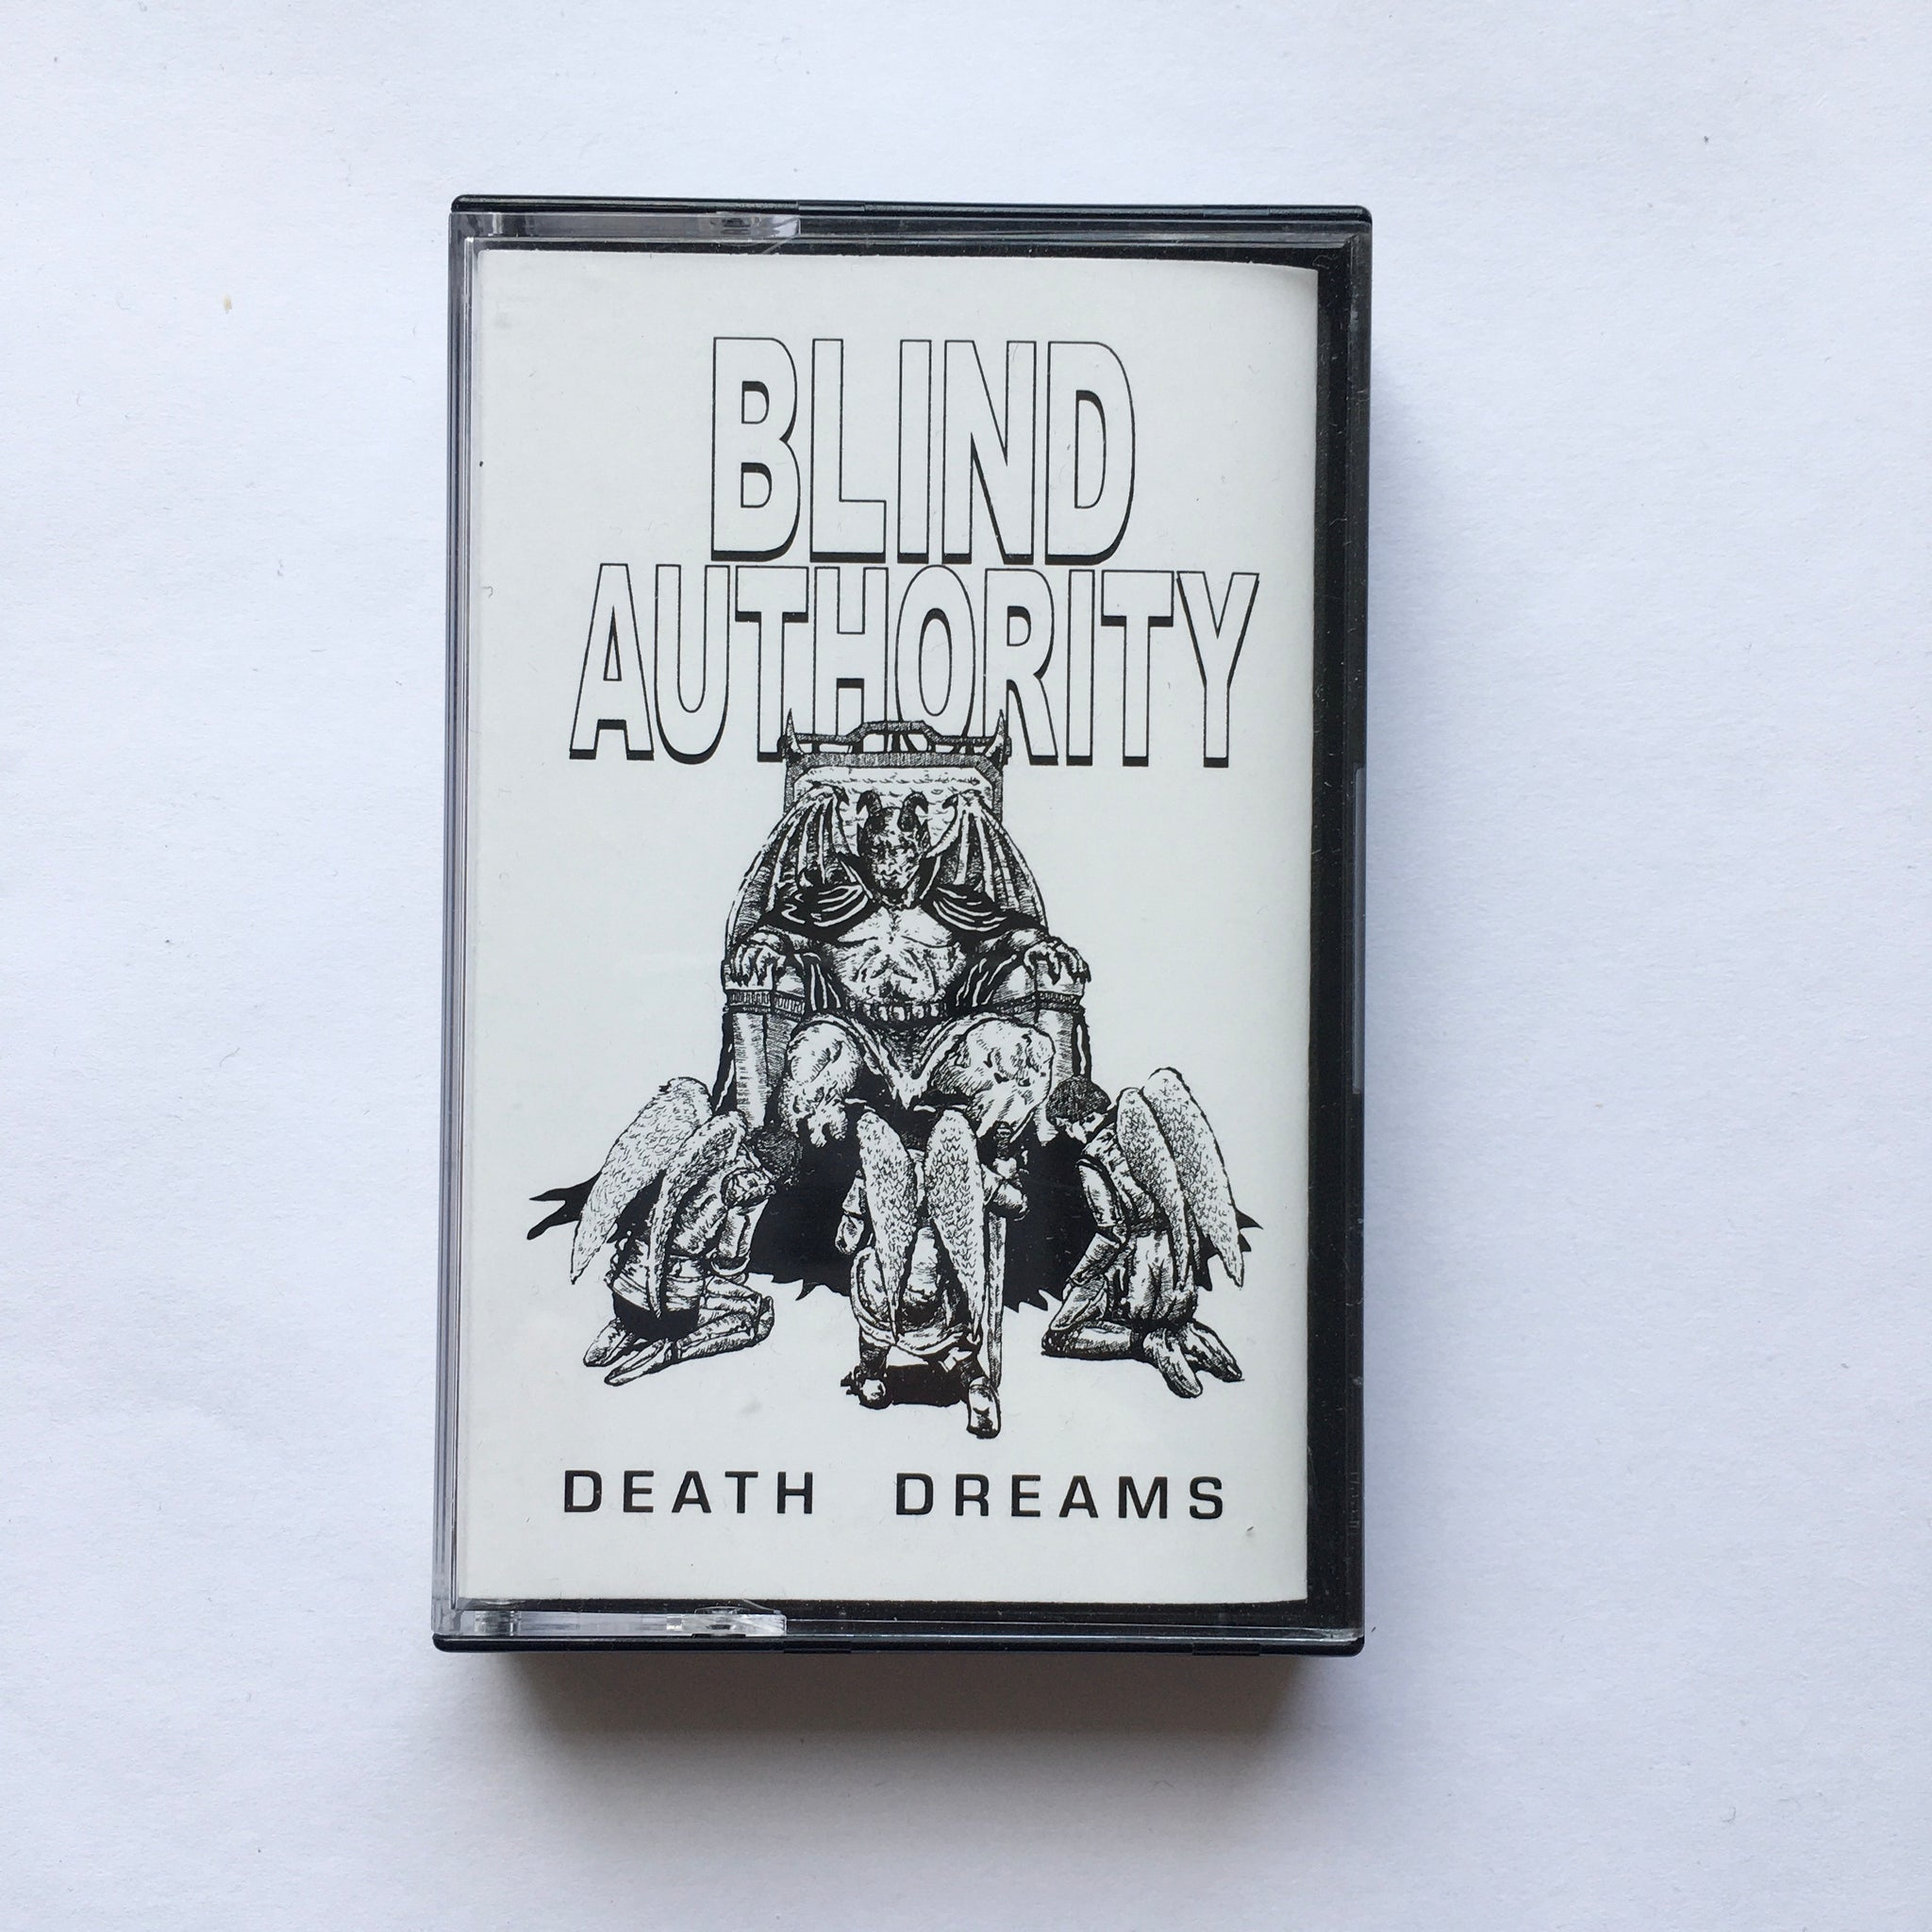 Blind Authority - Death Dreams Tape